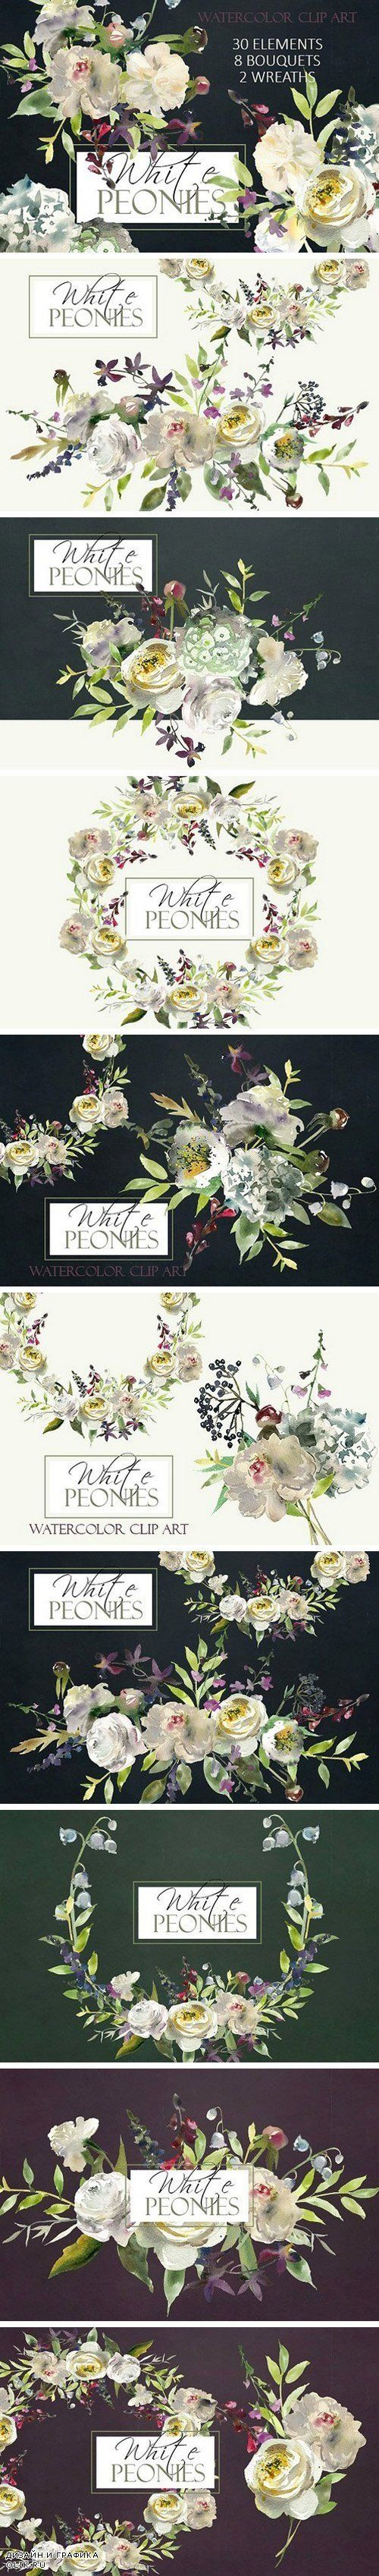 hight resolution of watercolor white flowers clipart 983330